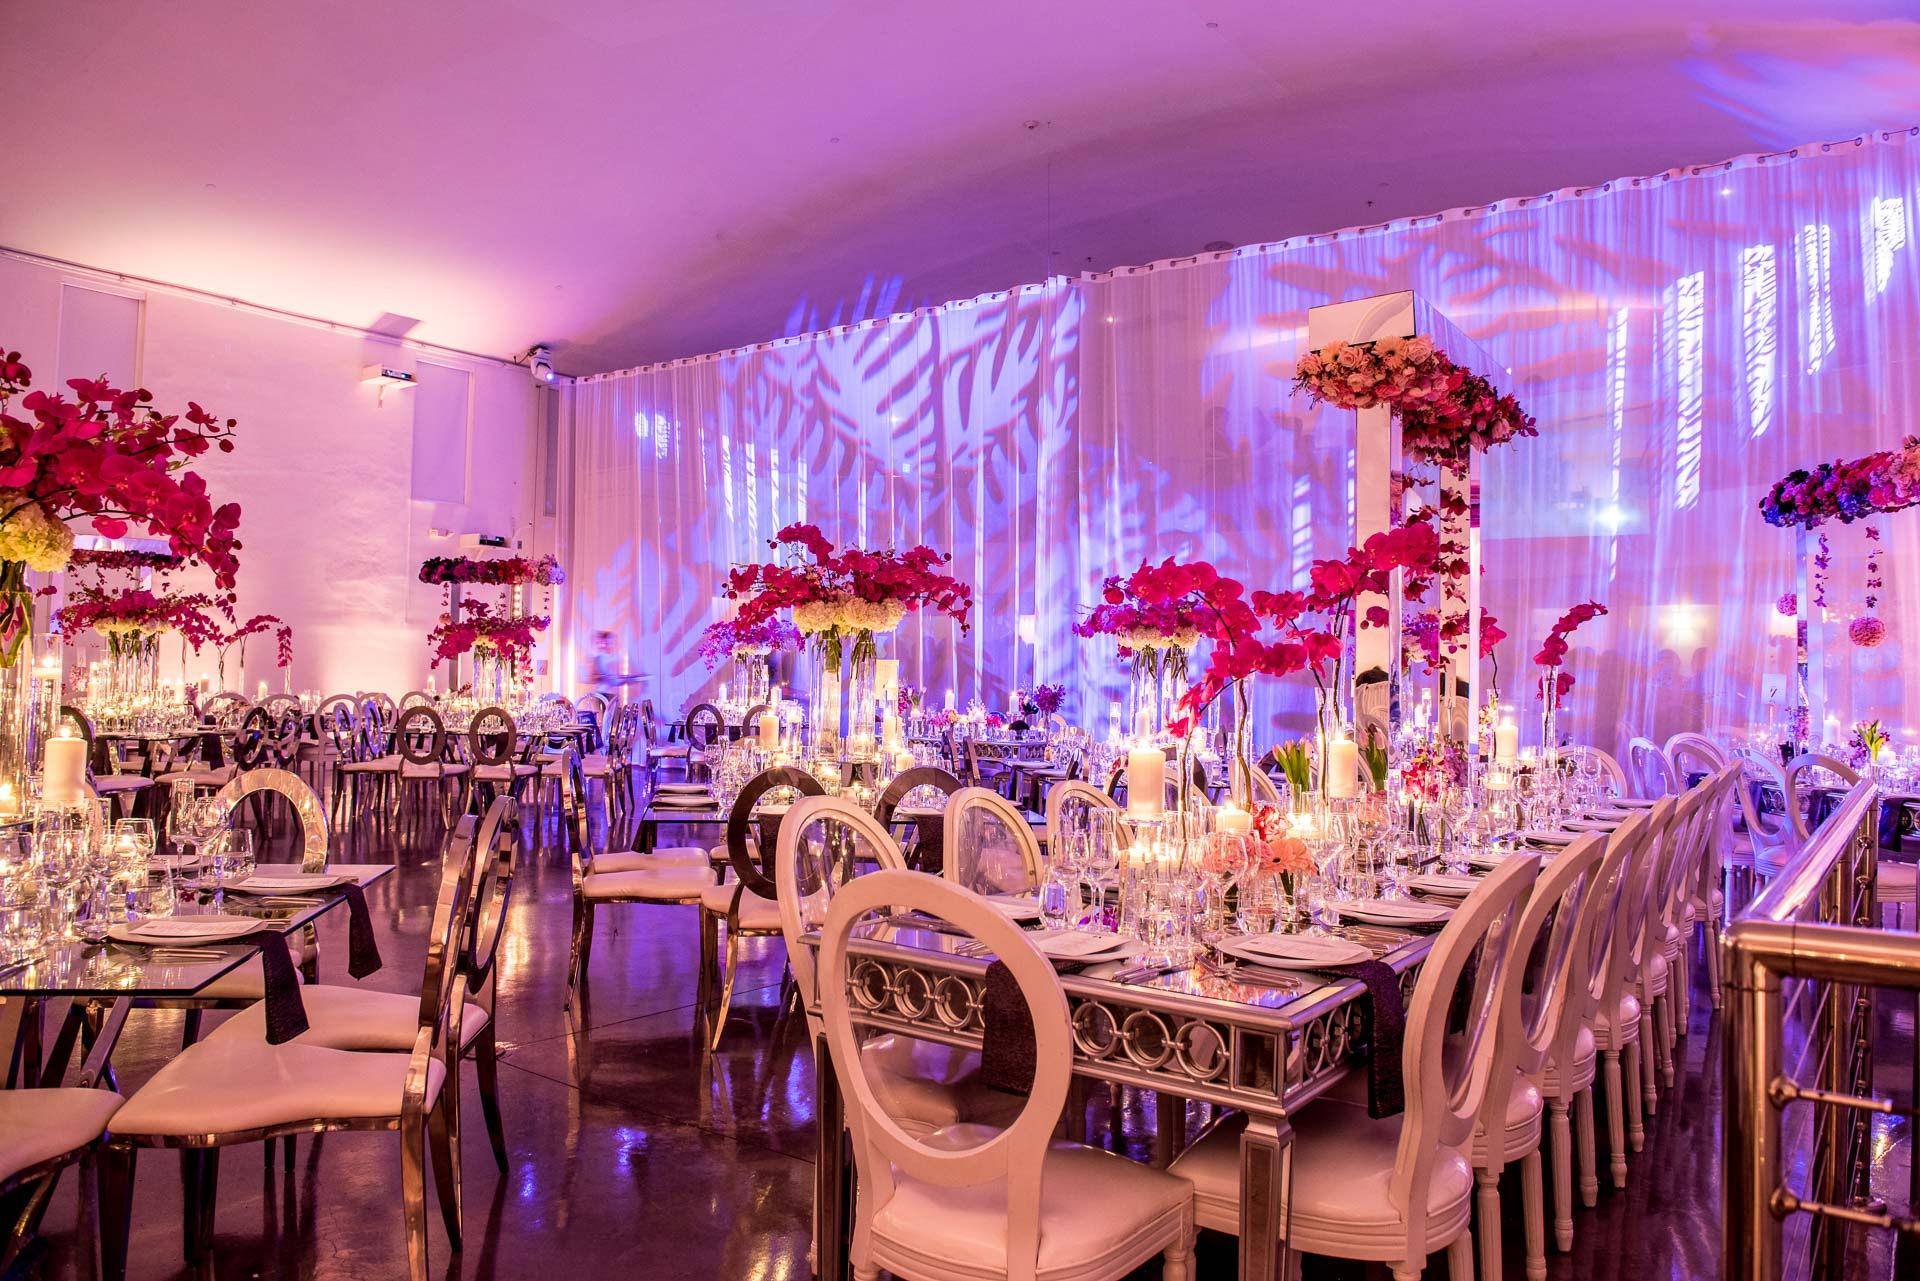 Wedding Day Decor For The Modern Bride  | Wall Images